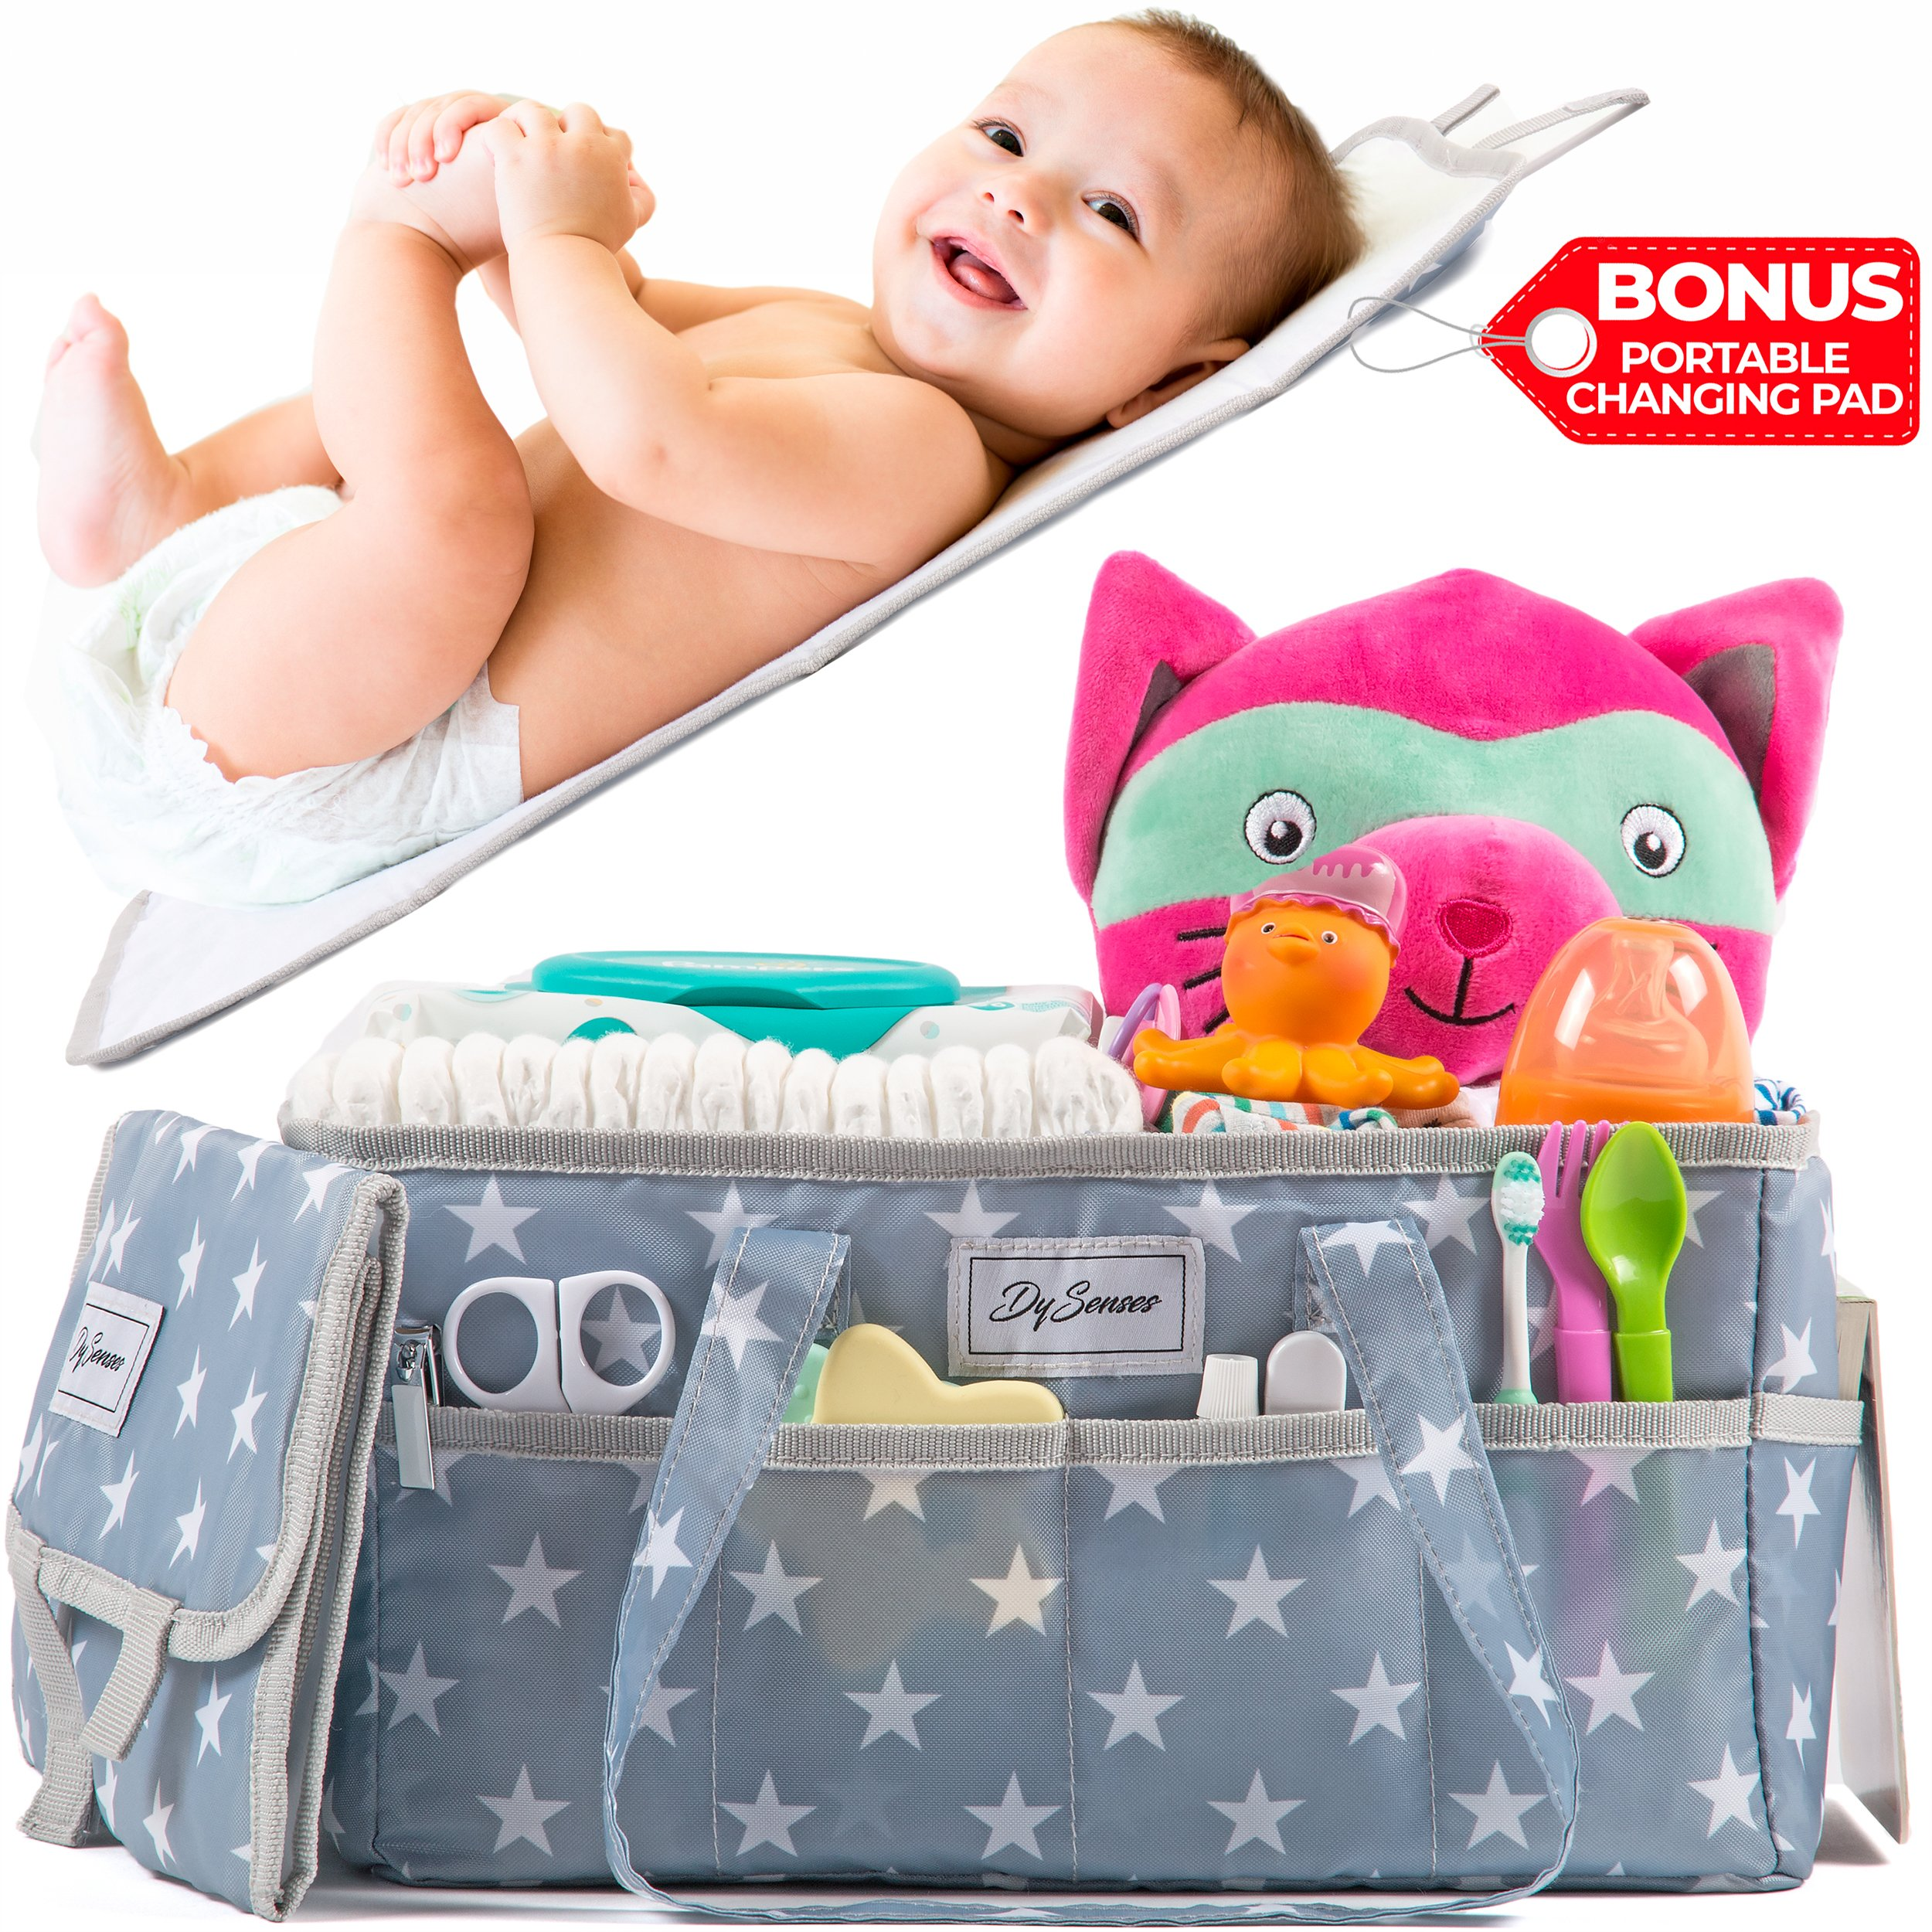 Diaper Storage Caddy Nursery Organizer | Grey Baby Diaper Caddy & Portable Changing Pad | Suitable for Car Travel Picnic & Nursing Station